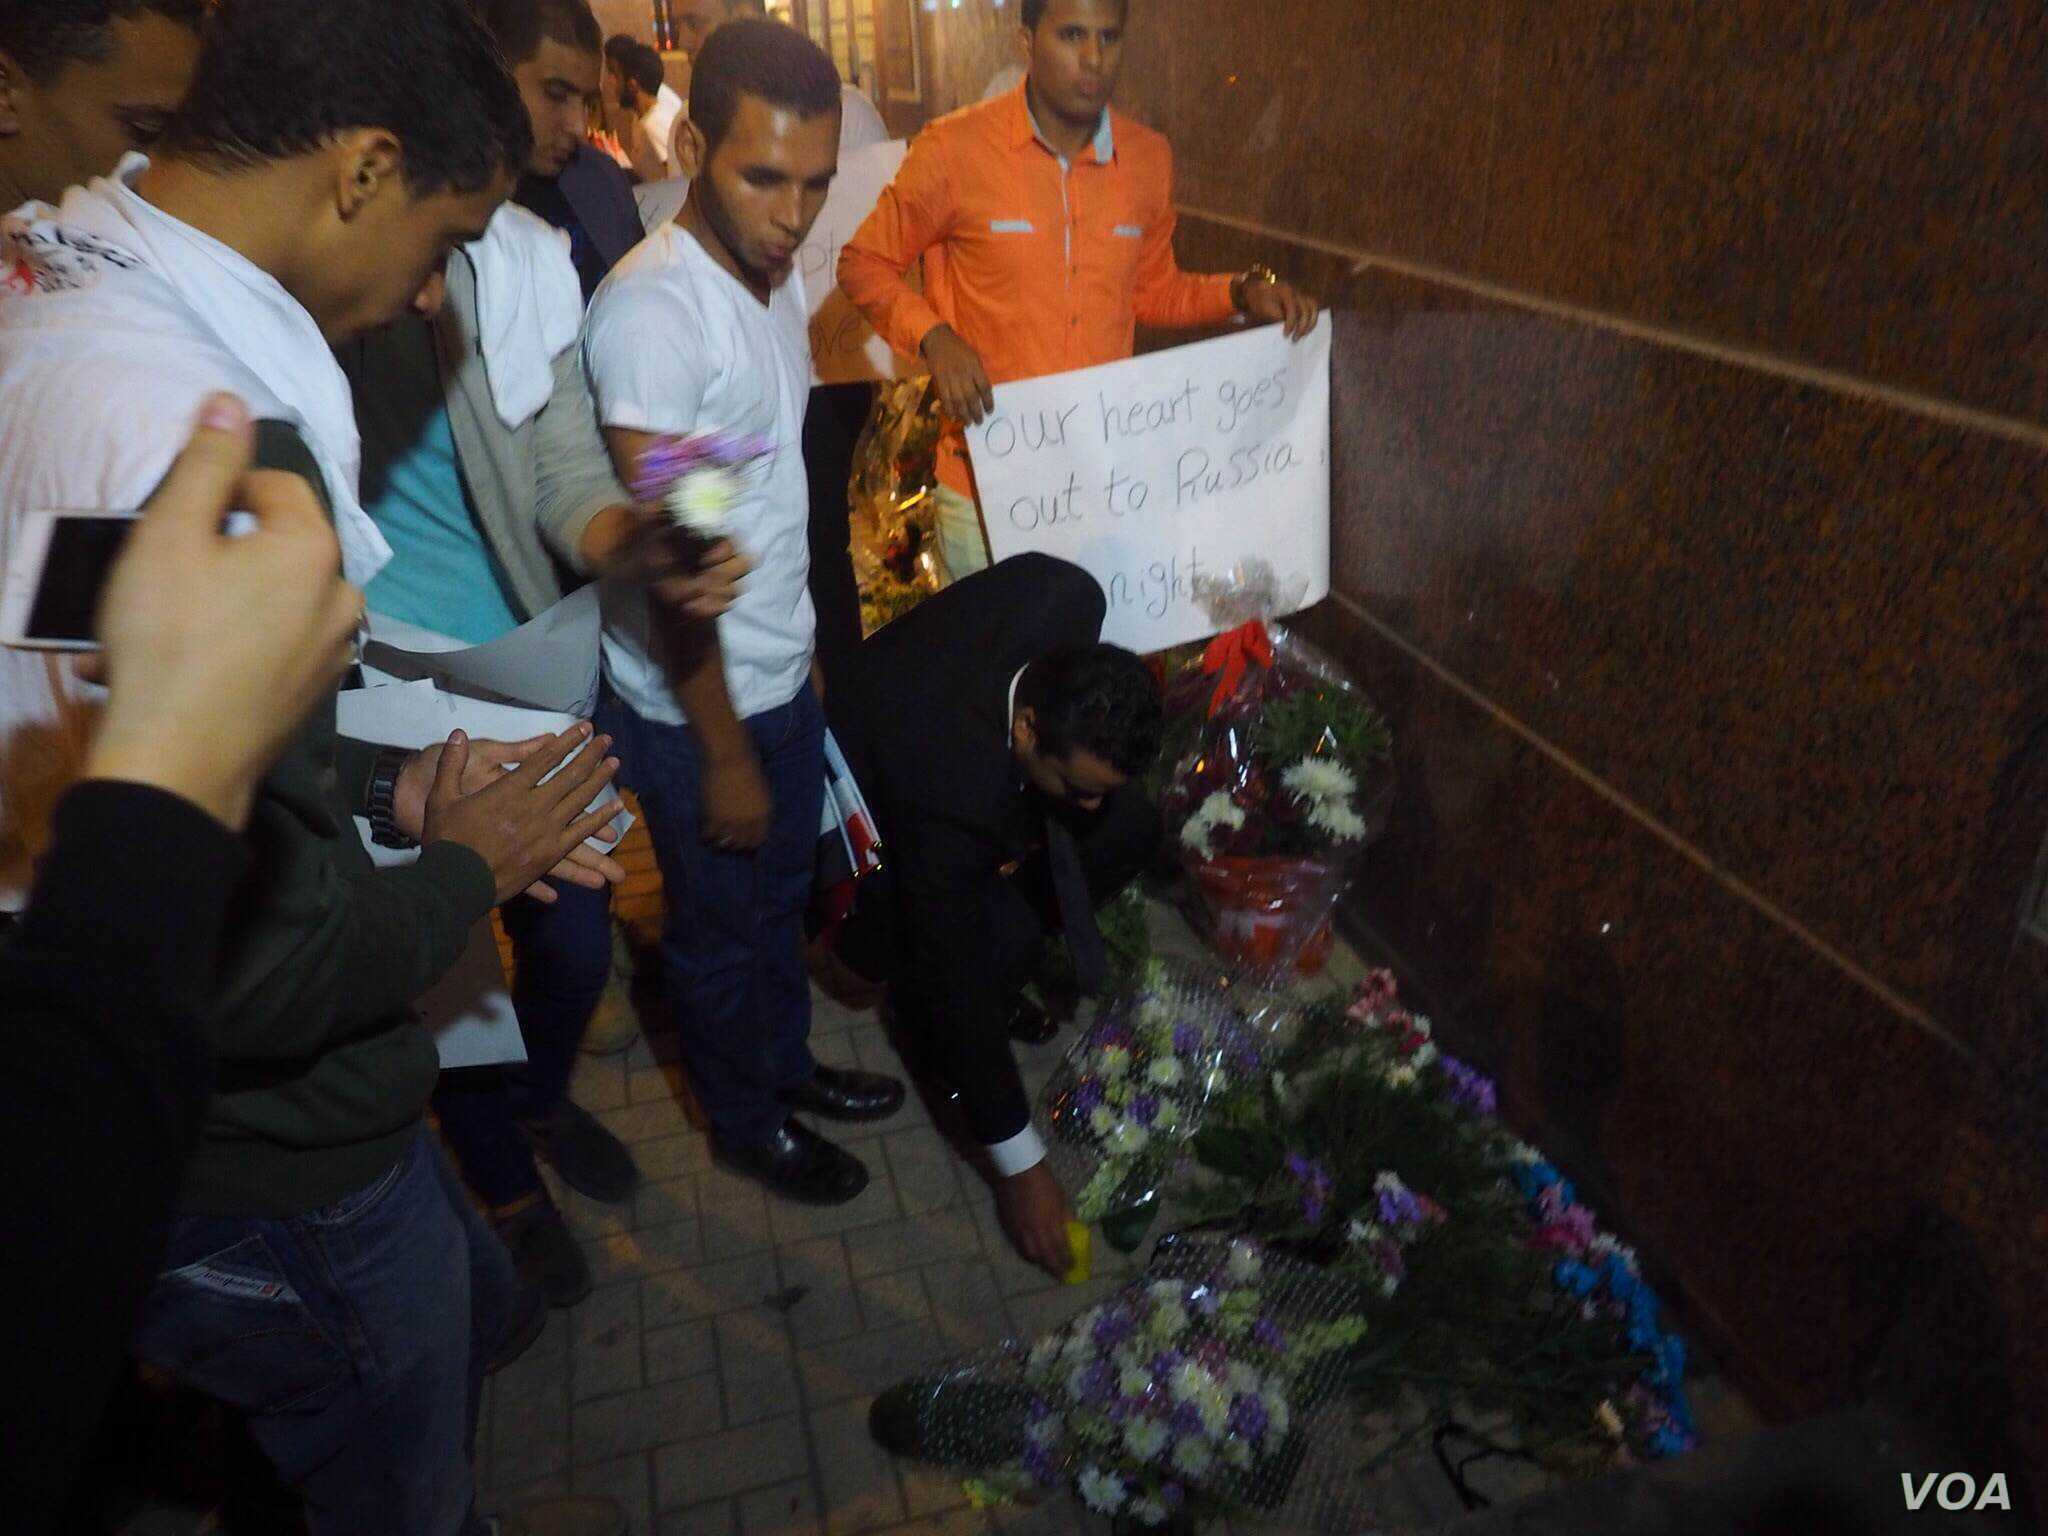 Young people gathered outside the Russian Embassy in Cairo, Egypt, Sunday night to mourn the victims and show their solidarity with Russian families, Nov. 1, 2015. (Photo: Hamada Elrasam for VOA)